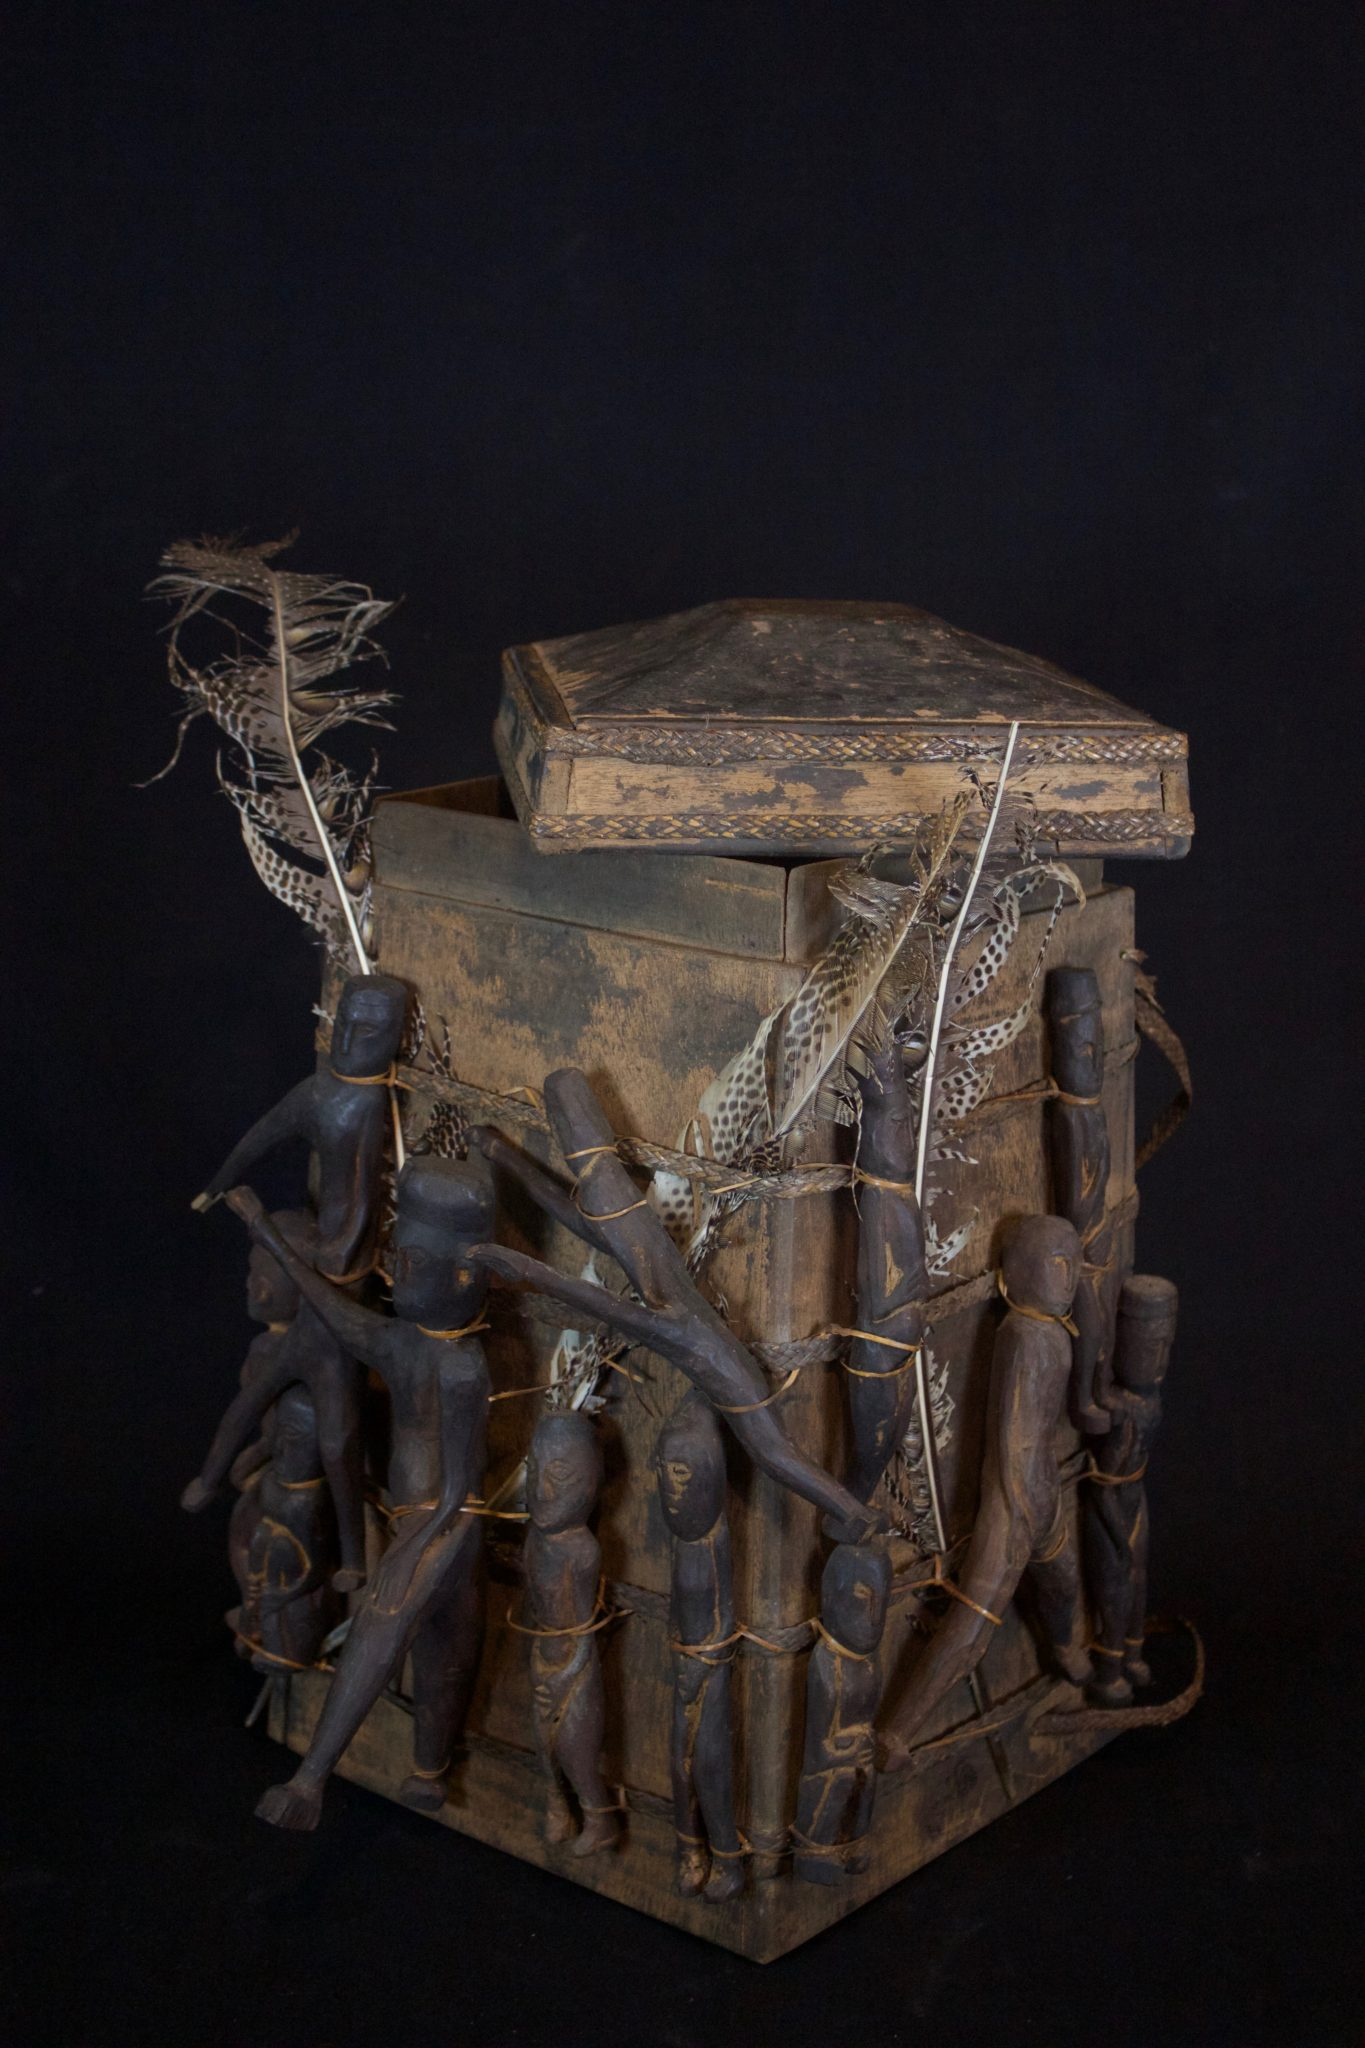 Lupong Manang' or Shaman's Medicine Carrier/Backpack with Healing